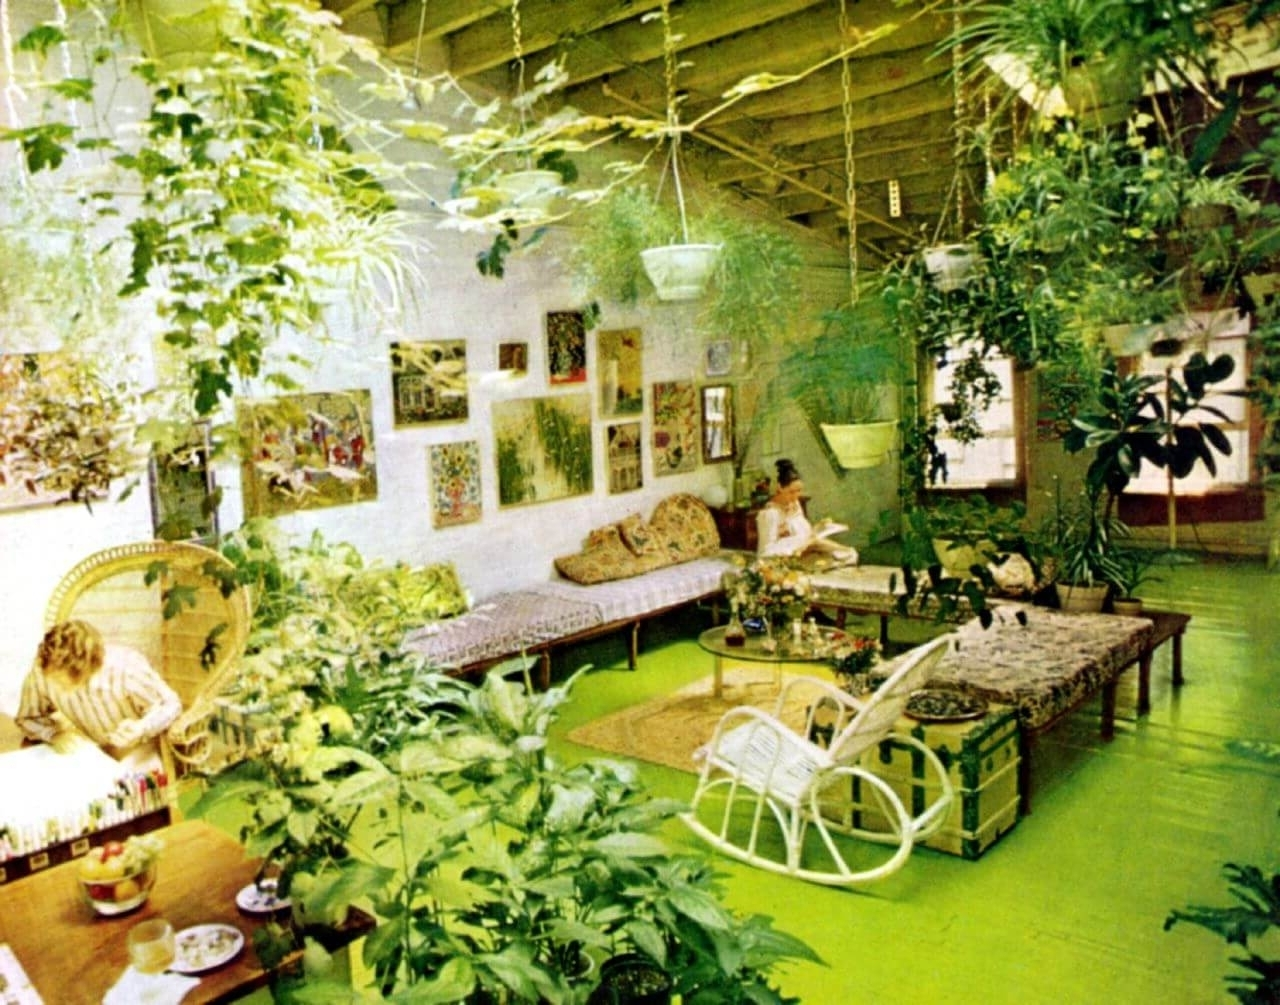 it39s-a-jungle-in-there-invasion-of-the-1970s-houseplants-go-retro-inside-81-interesting-images-of-house-plants.jpg